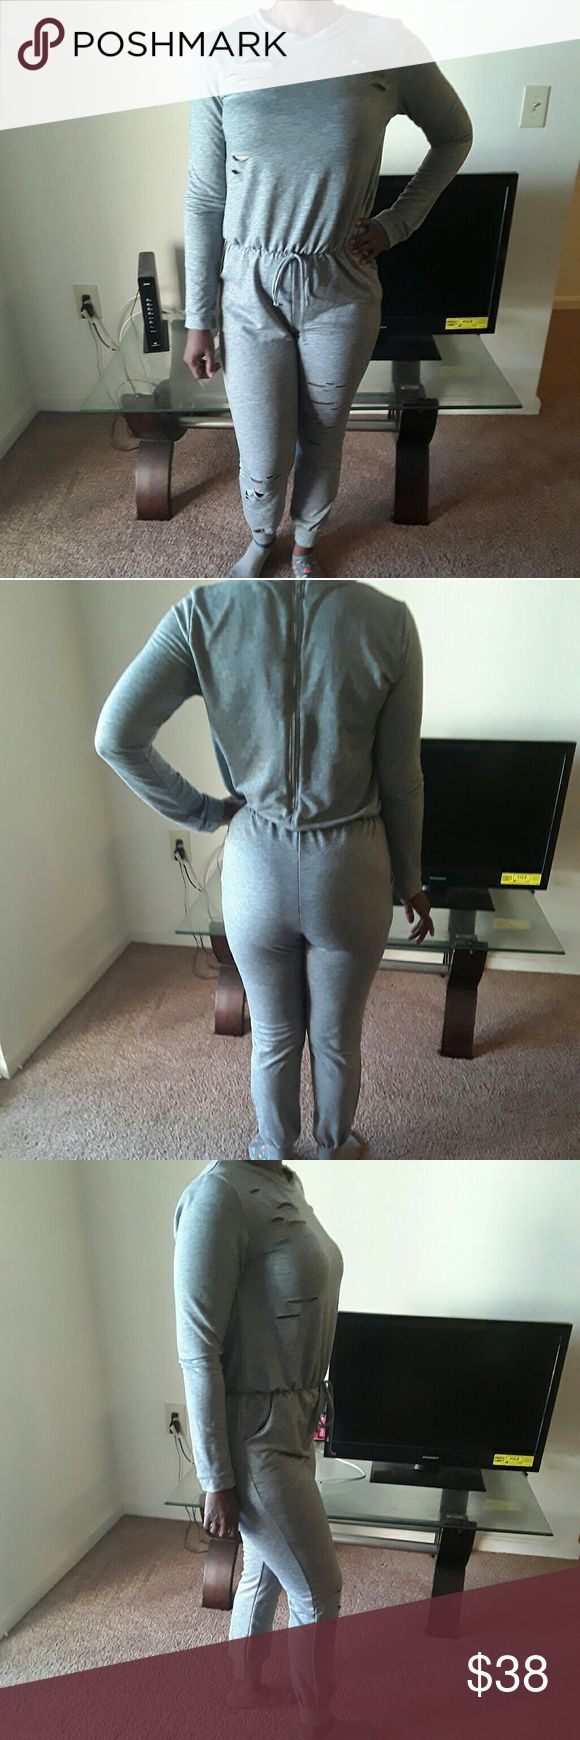 Grey Jumpsuit Cute grey jumpsuit great for lounging Pants Jumpsuits & Rompers